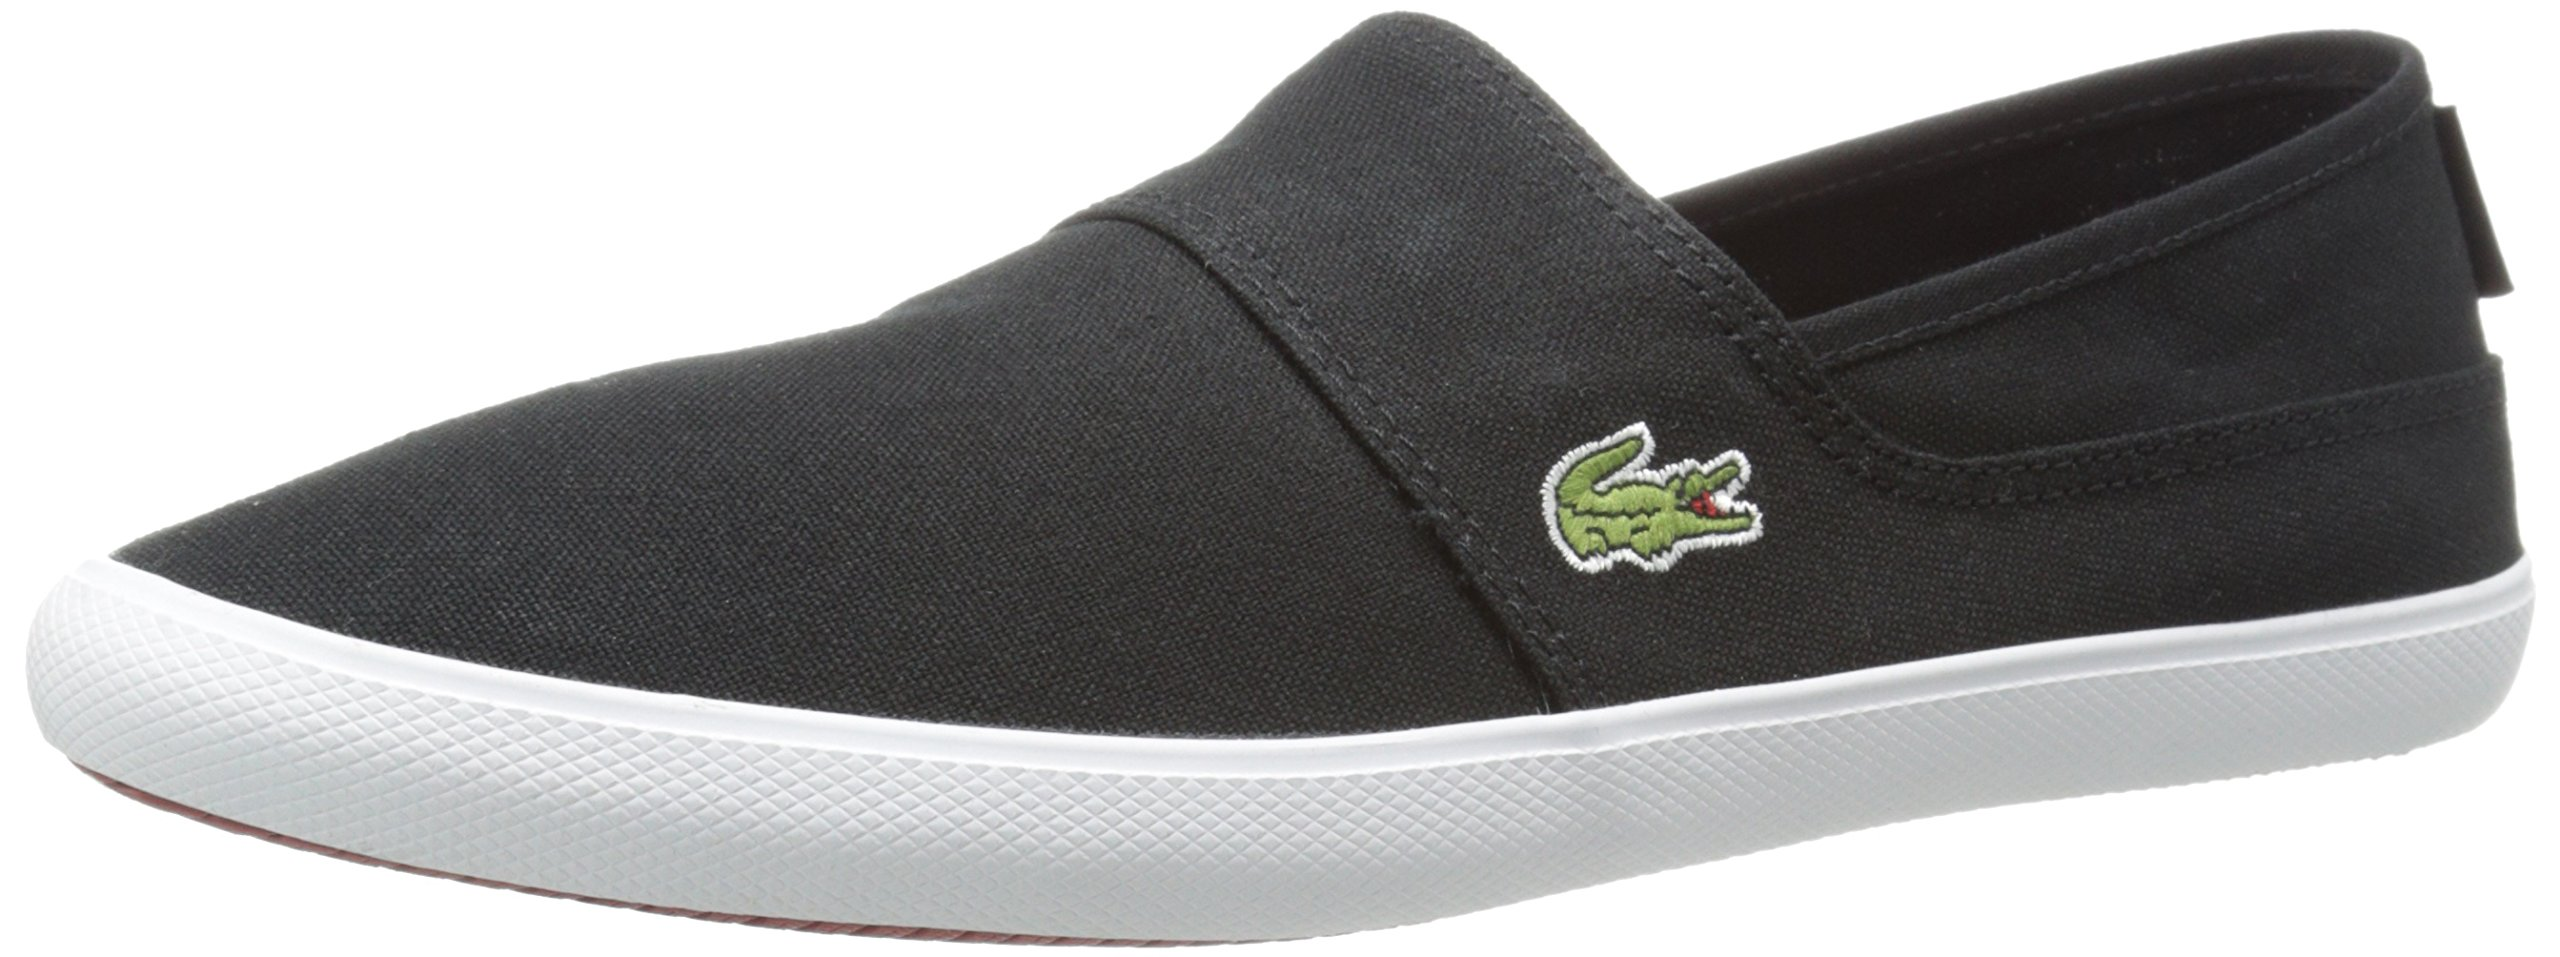 Lacoste Men's BL Canvas Loafer, Black/Black, 10 M US by Lacoste